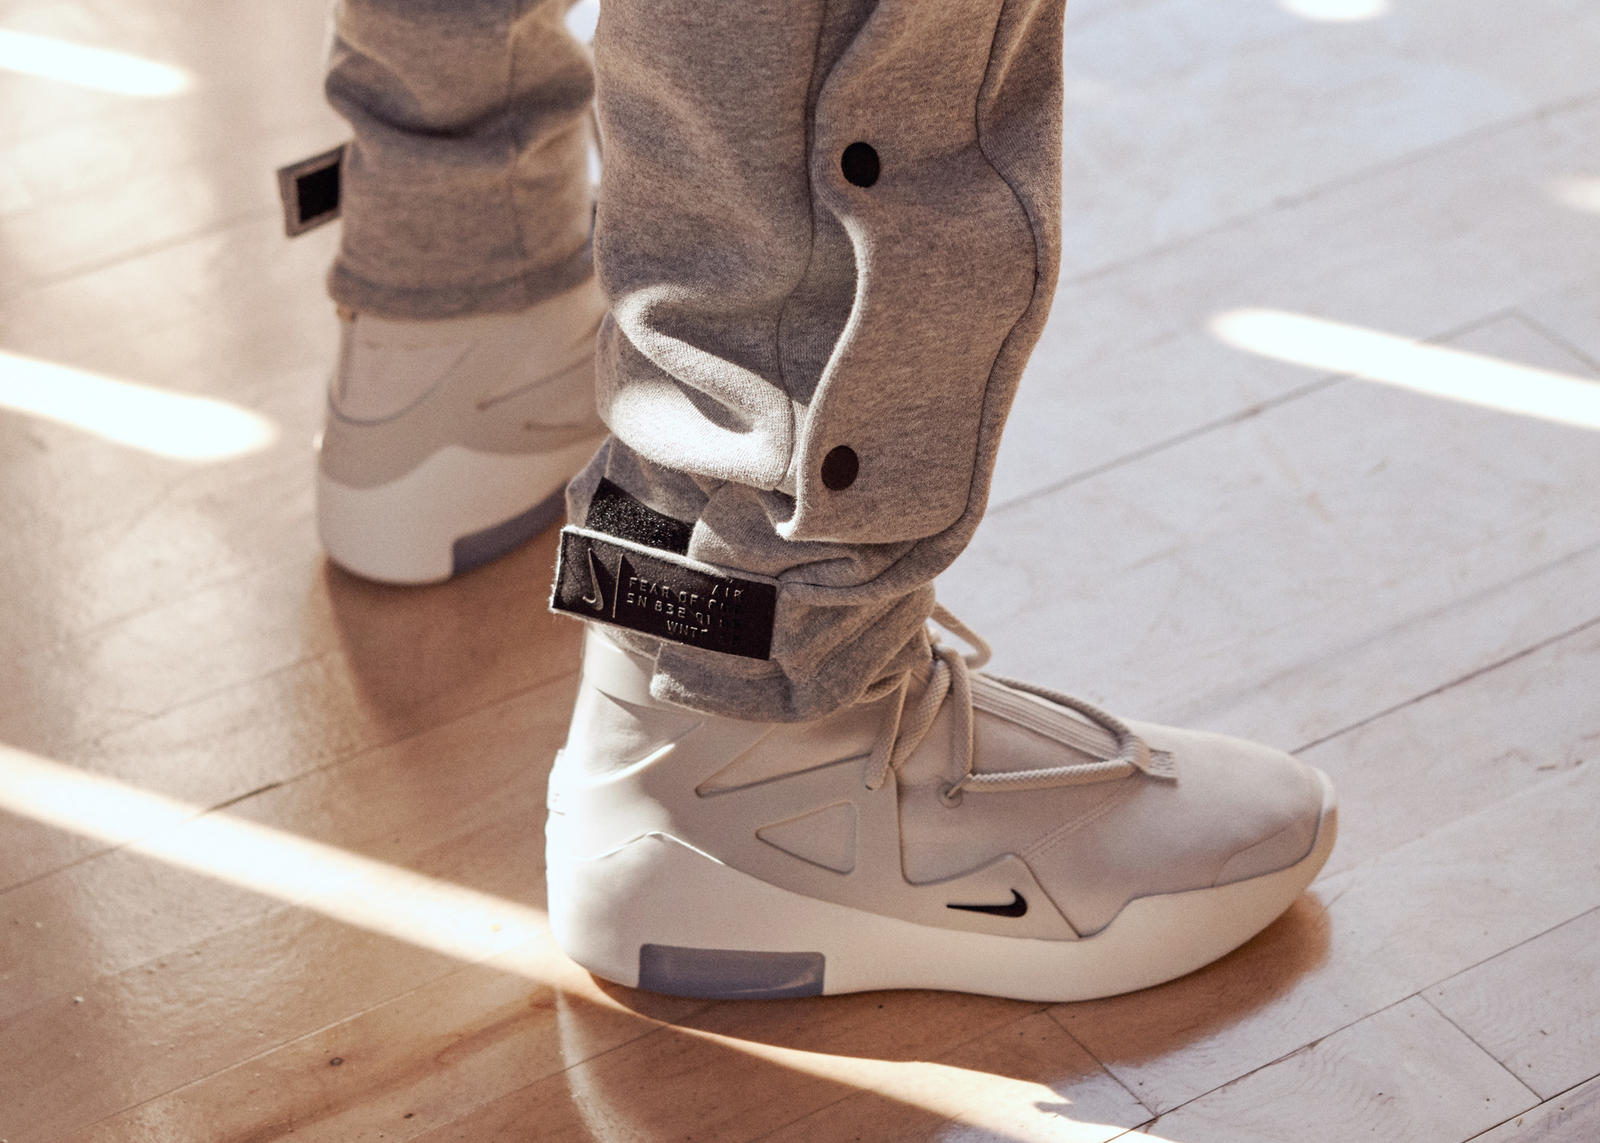 Nike x Fear of God 13